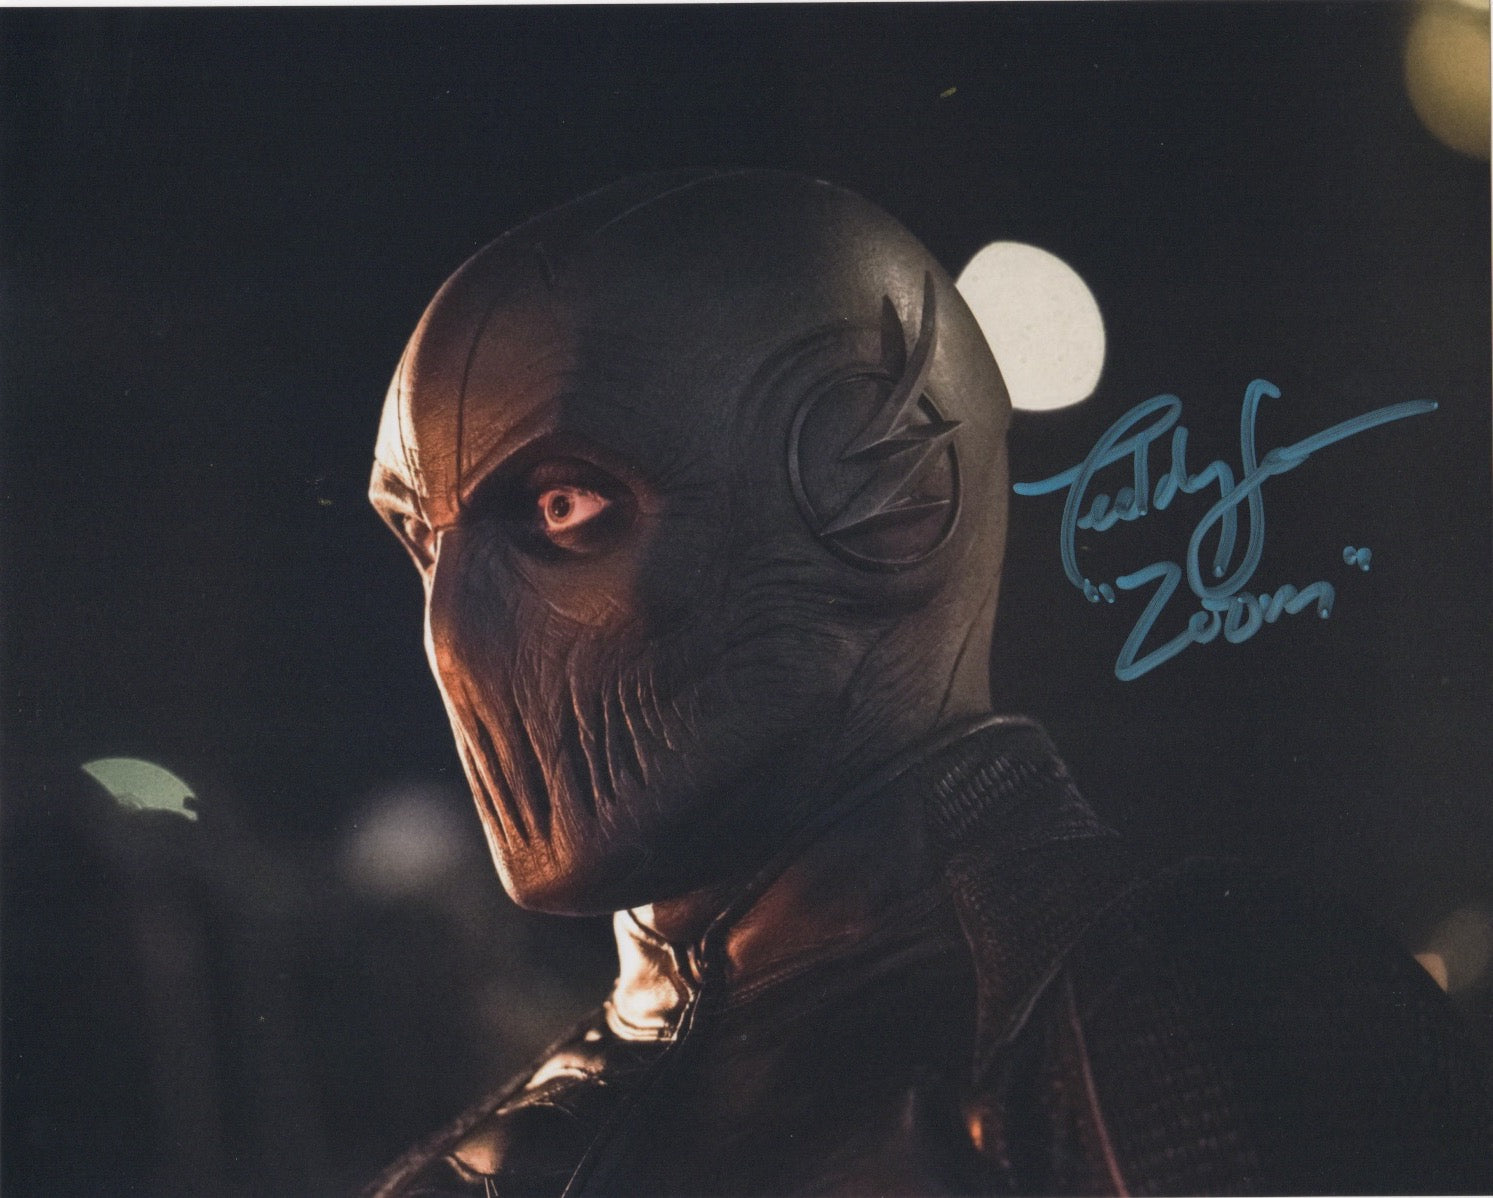 Teddy Sears The Flash Signed Autograph Zoom 8x10 Photo #4 - Outlaw Hobbies Authentic Autographs